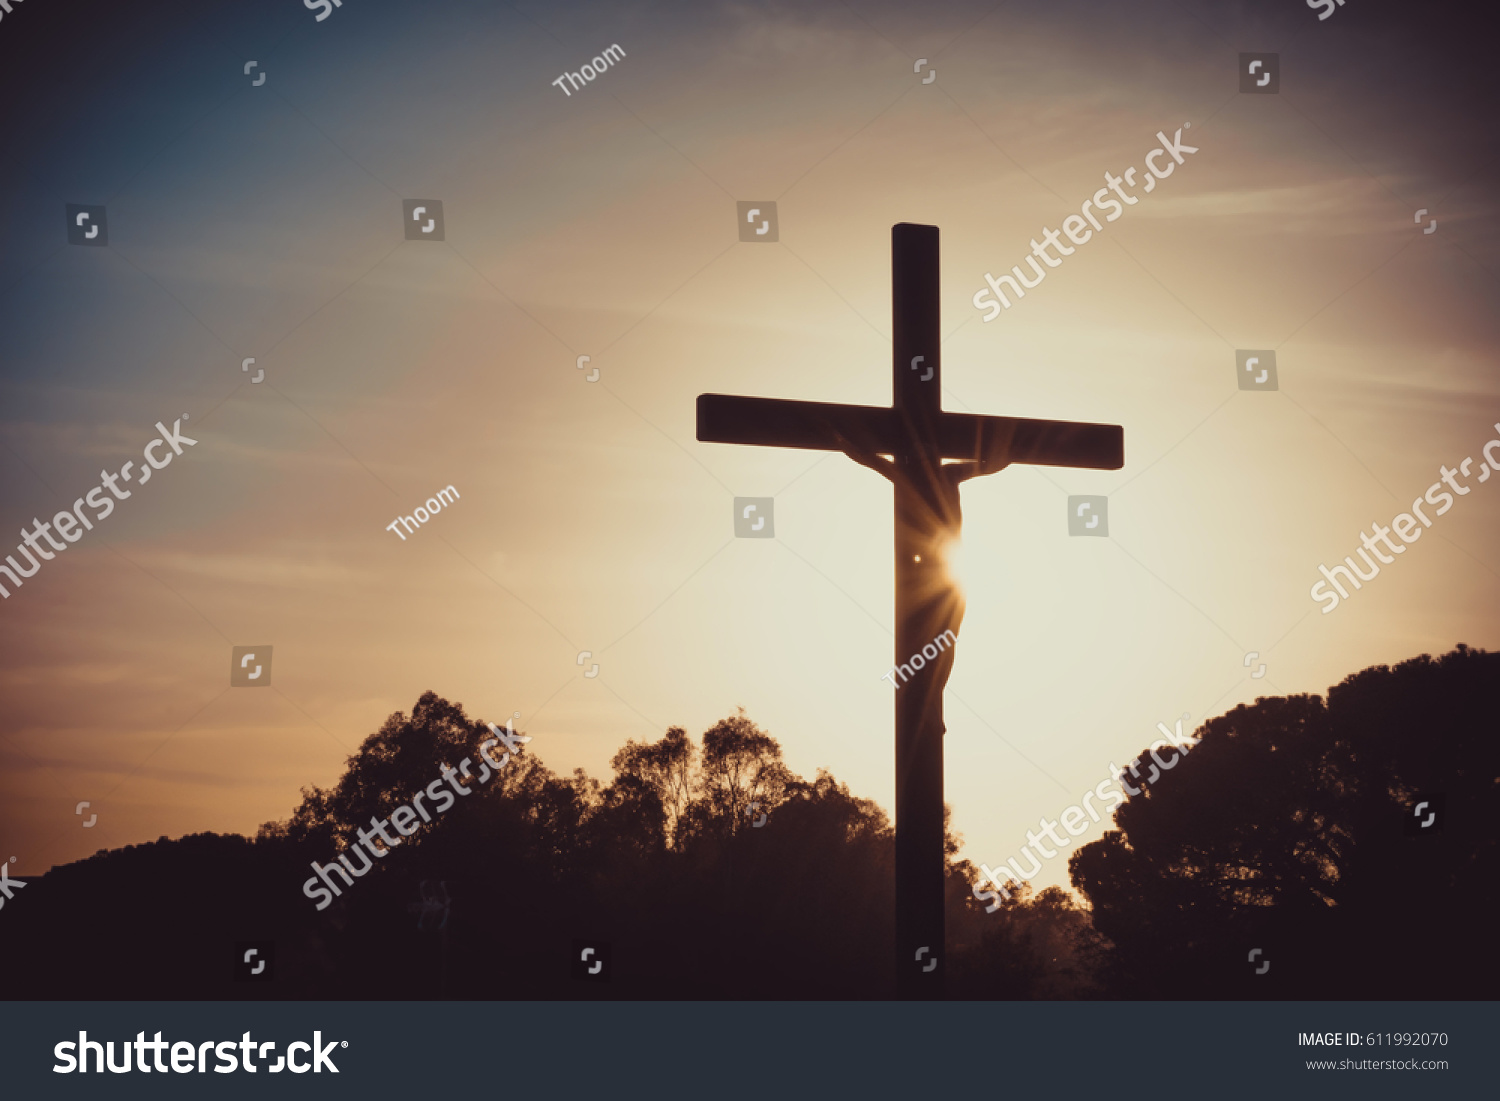 Jesus christ on the cross silhouette at sunset crucifixion on the calvary hill good